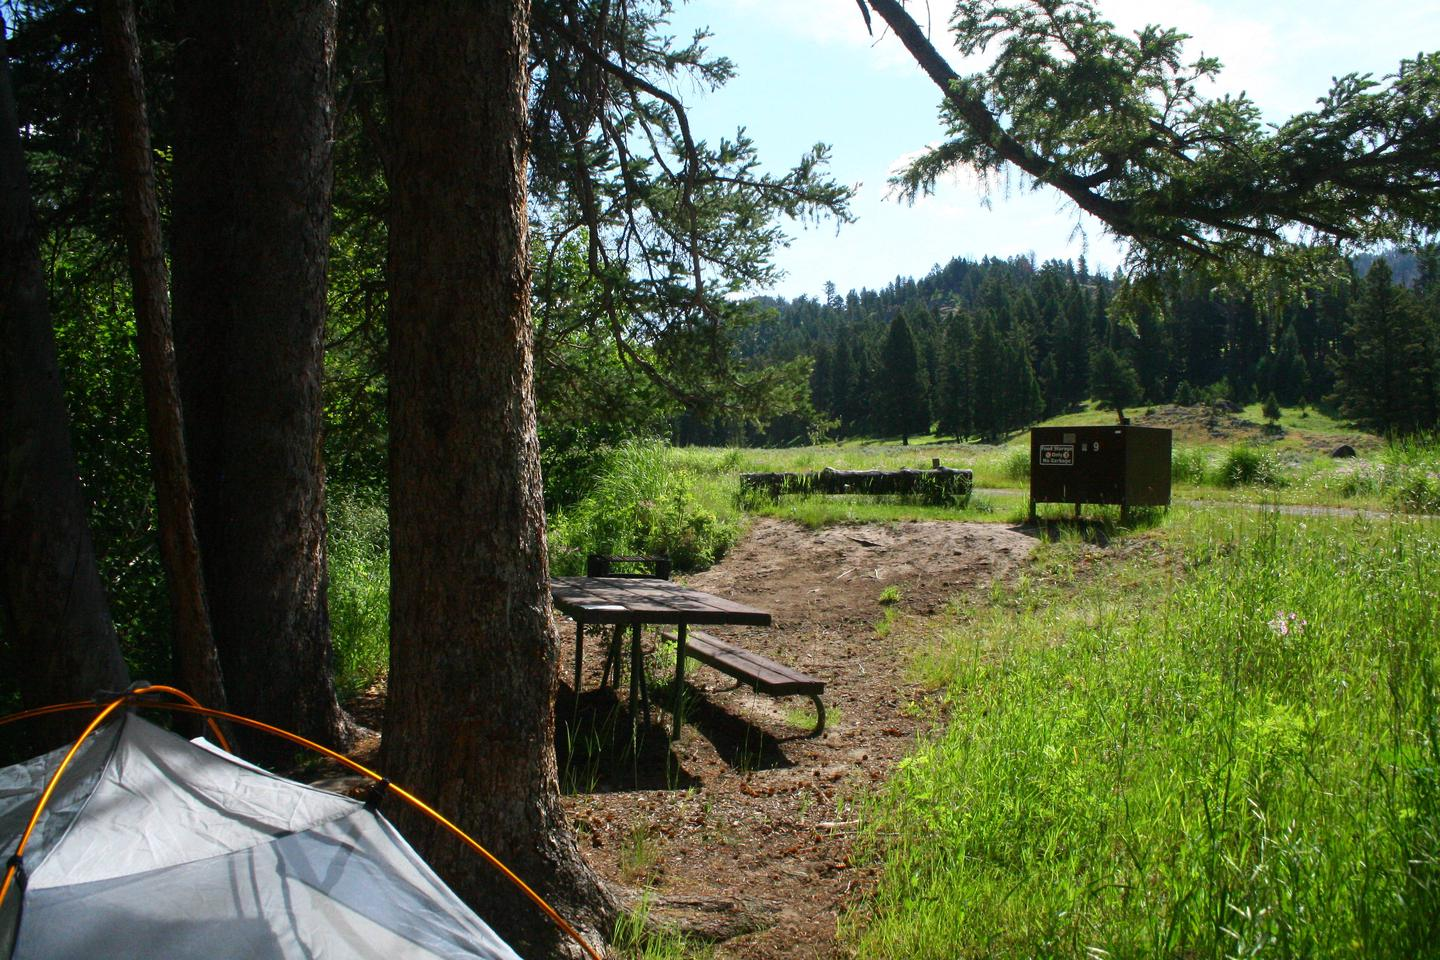 Slough Creek Campground Site #9..Slough Creek Campground Site #9